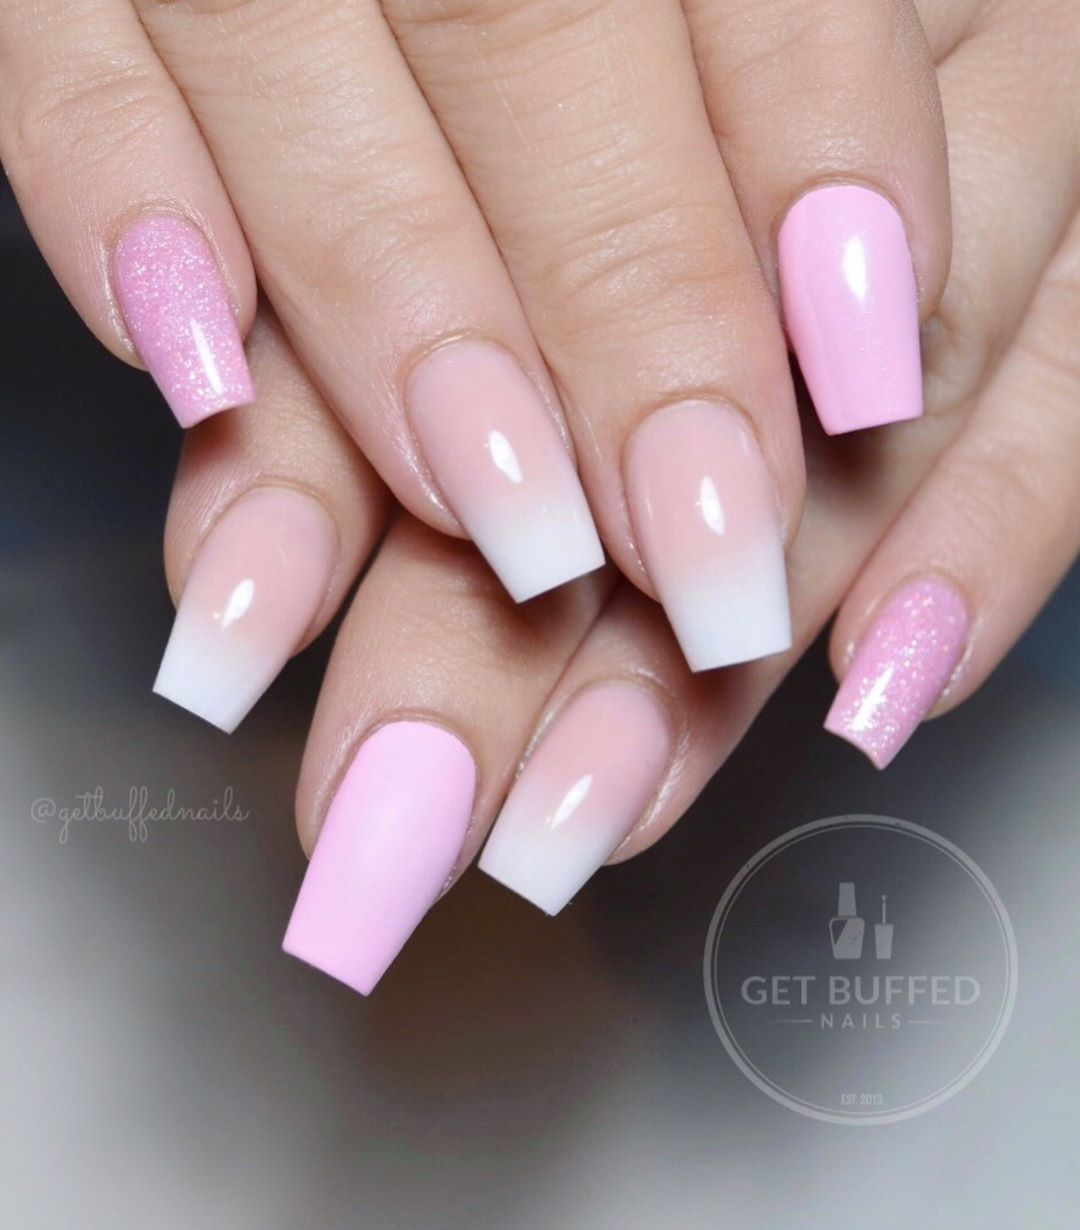 32 Extraordinary White Acrylic Nail Designs to Finish Your Trendy Look - Pink and White Acrylic Nails